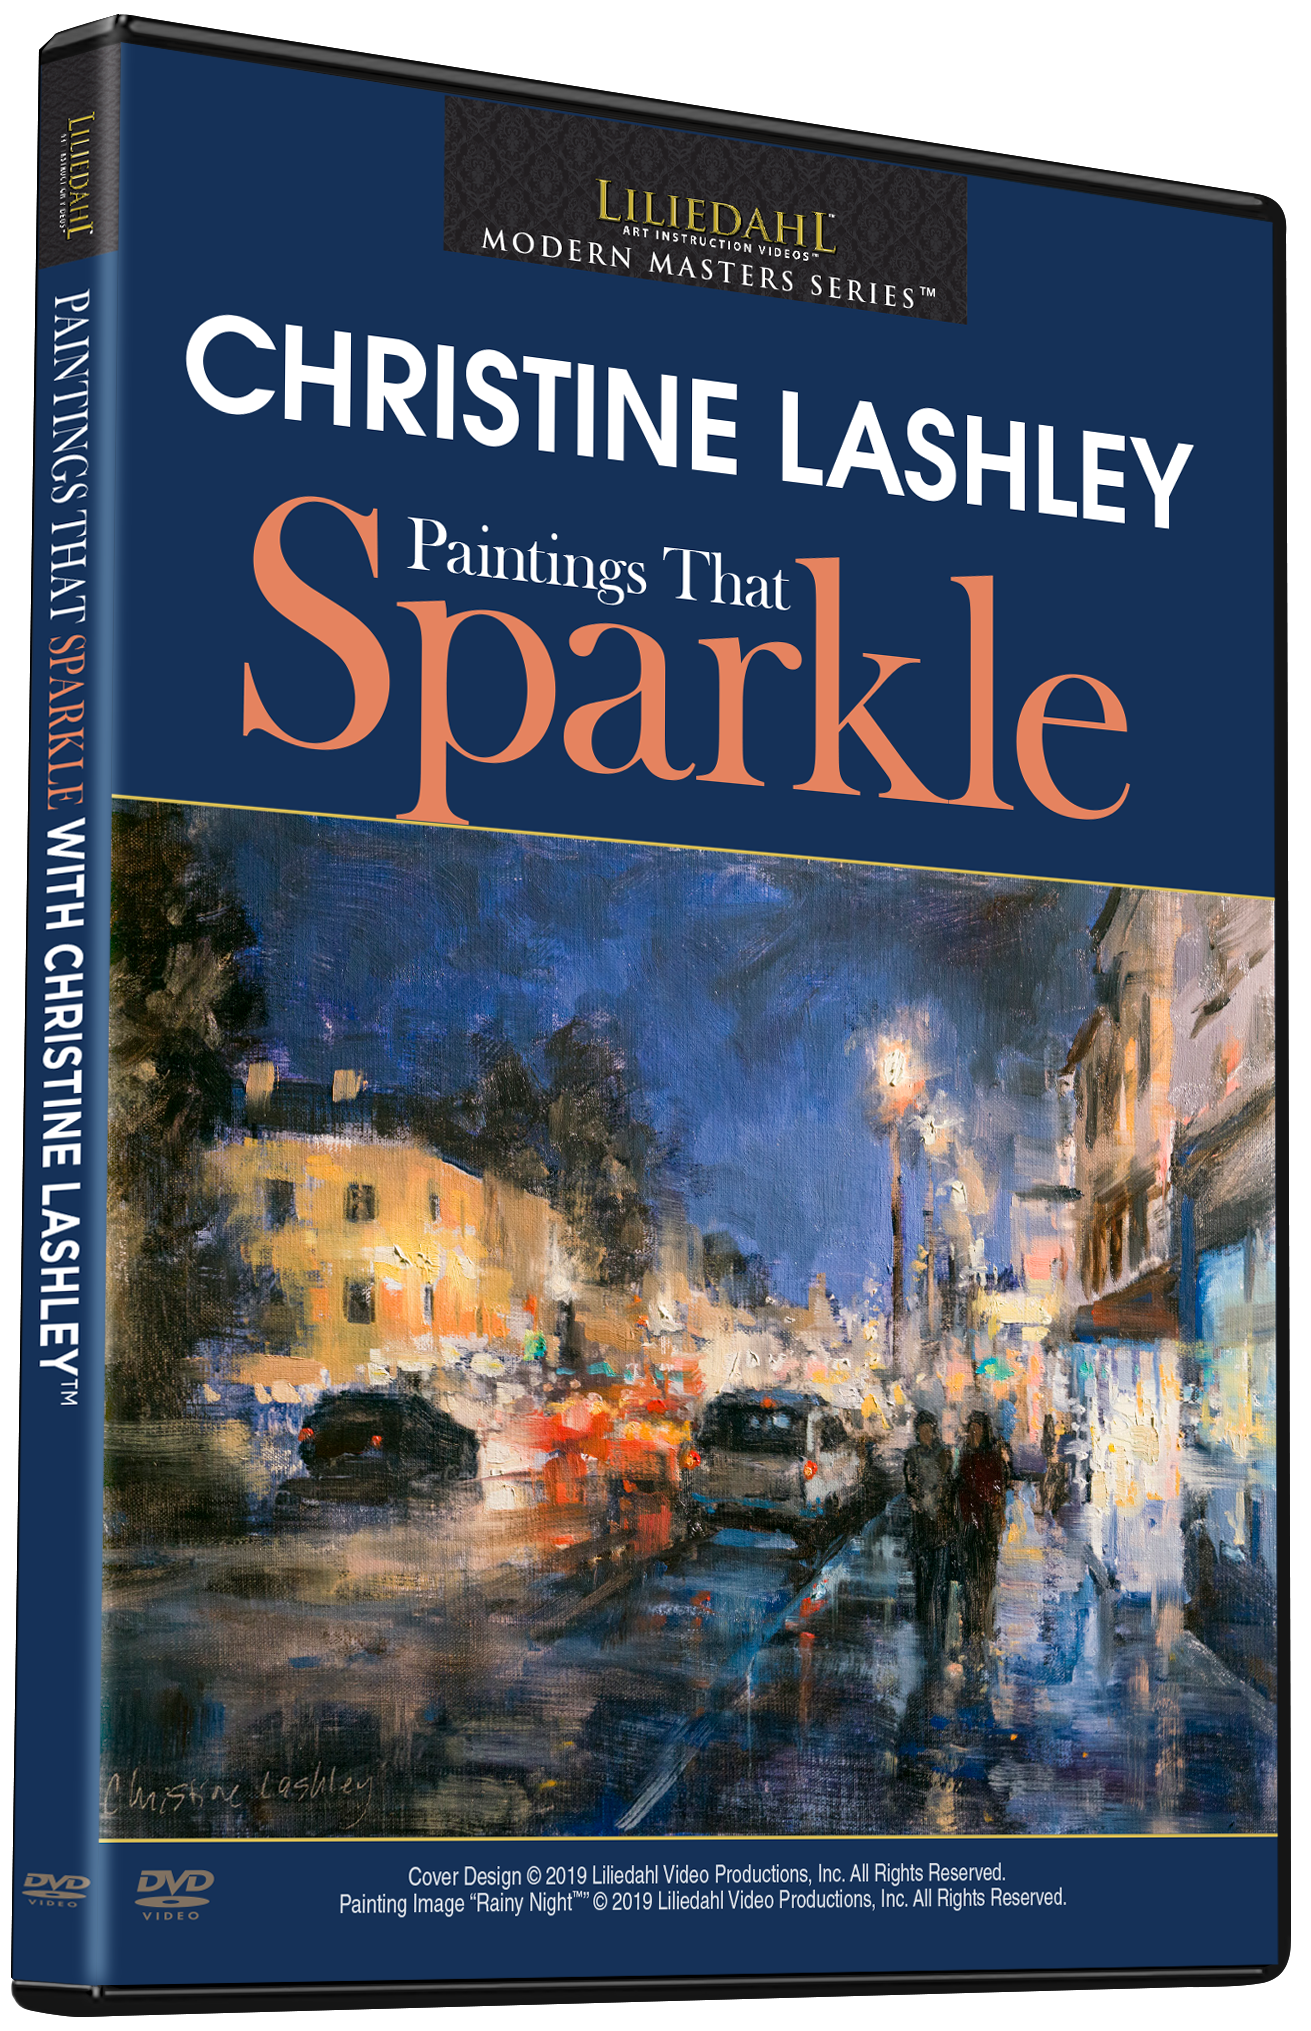 Christine Lashley: Paintings That Sparkle